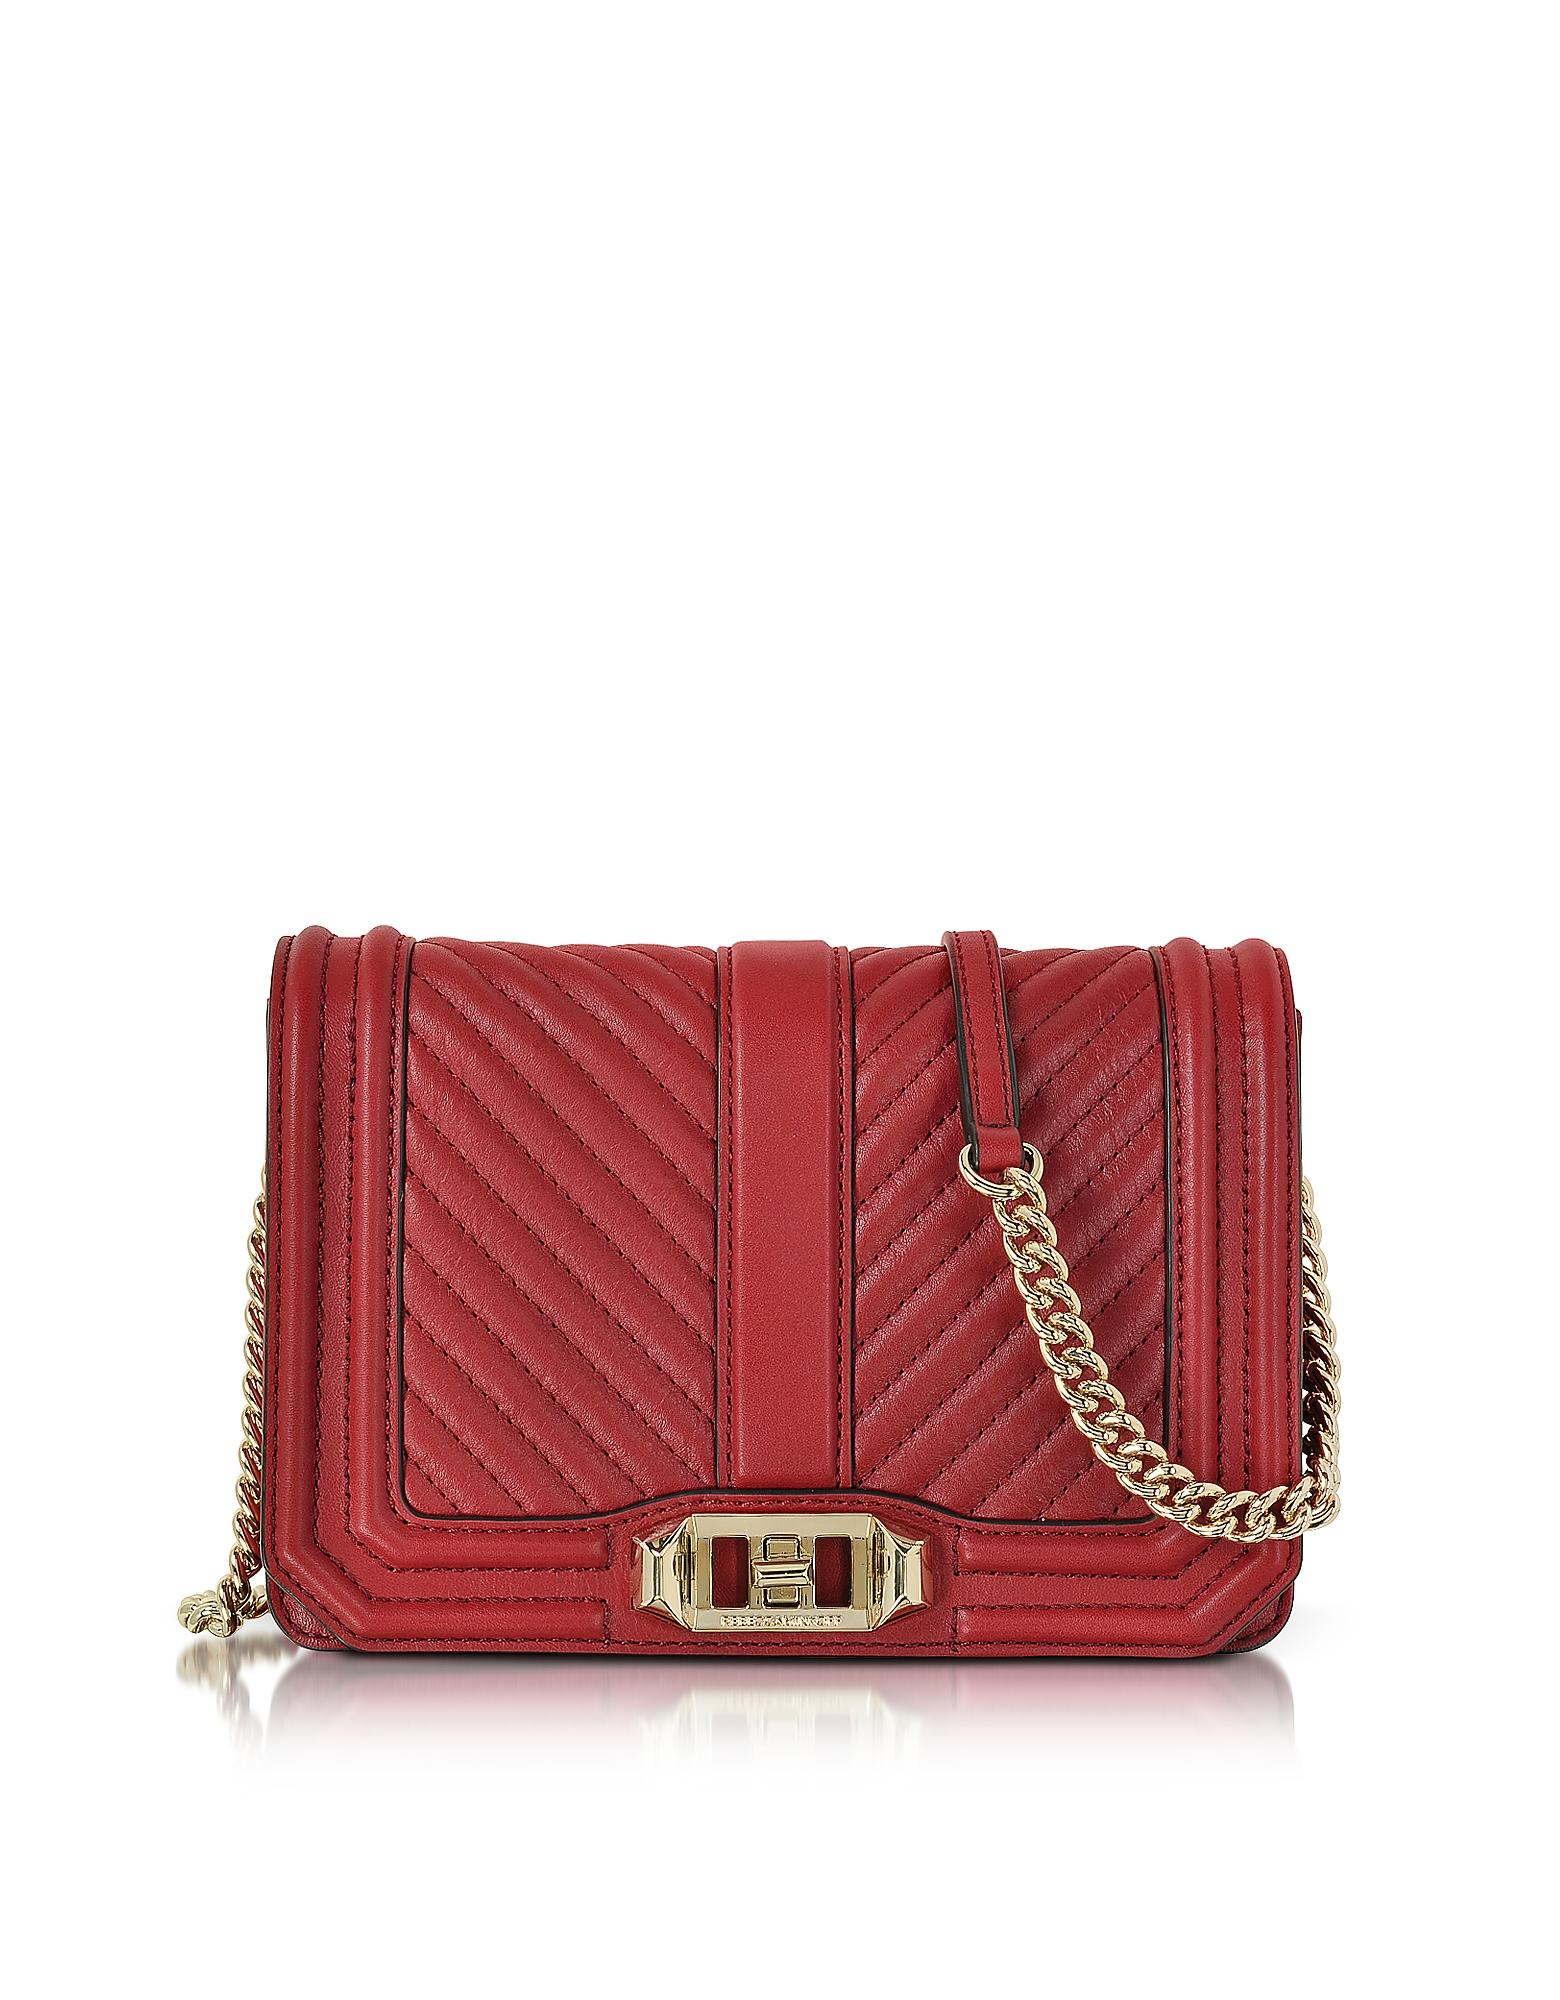 Rebecca minkoff Red Quilted Leather Small Love Crossbody ...